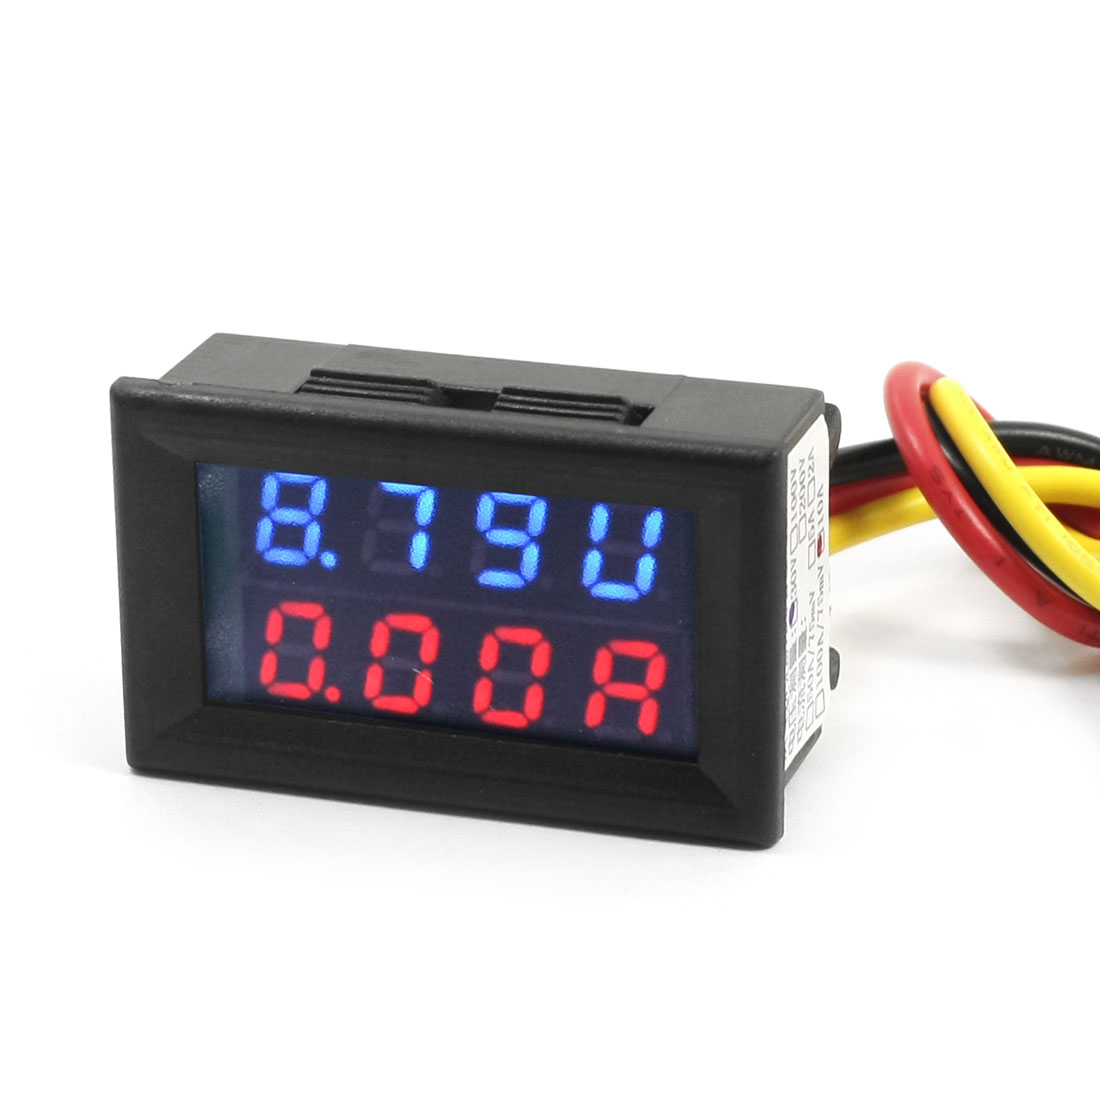 DC 0-30V 0-10A Blue Red Dual LED Digital Volt Voltmeter Ammeter Gauge